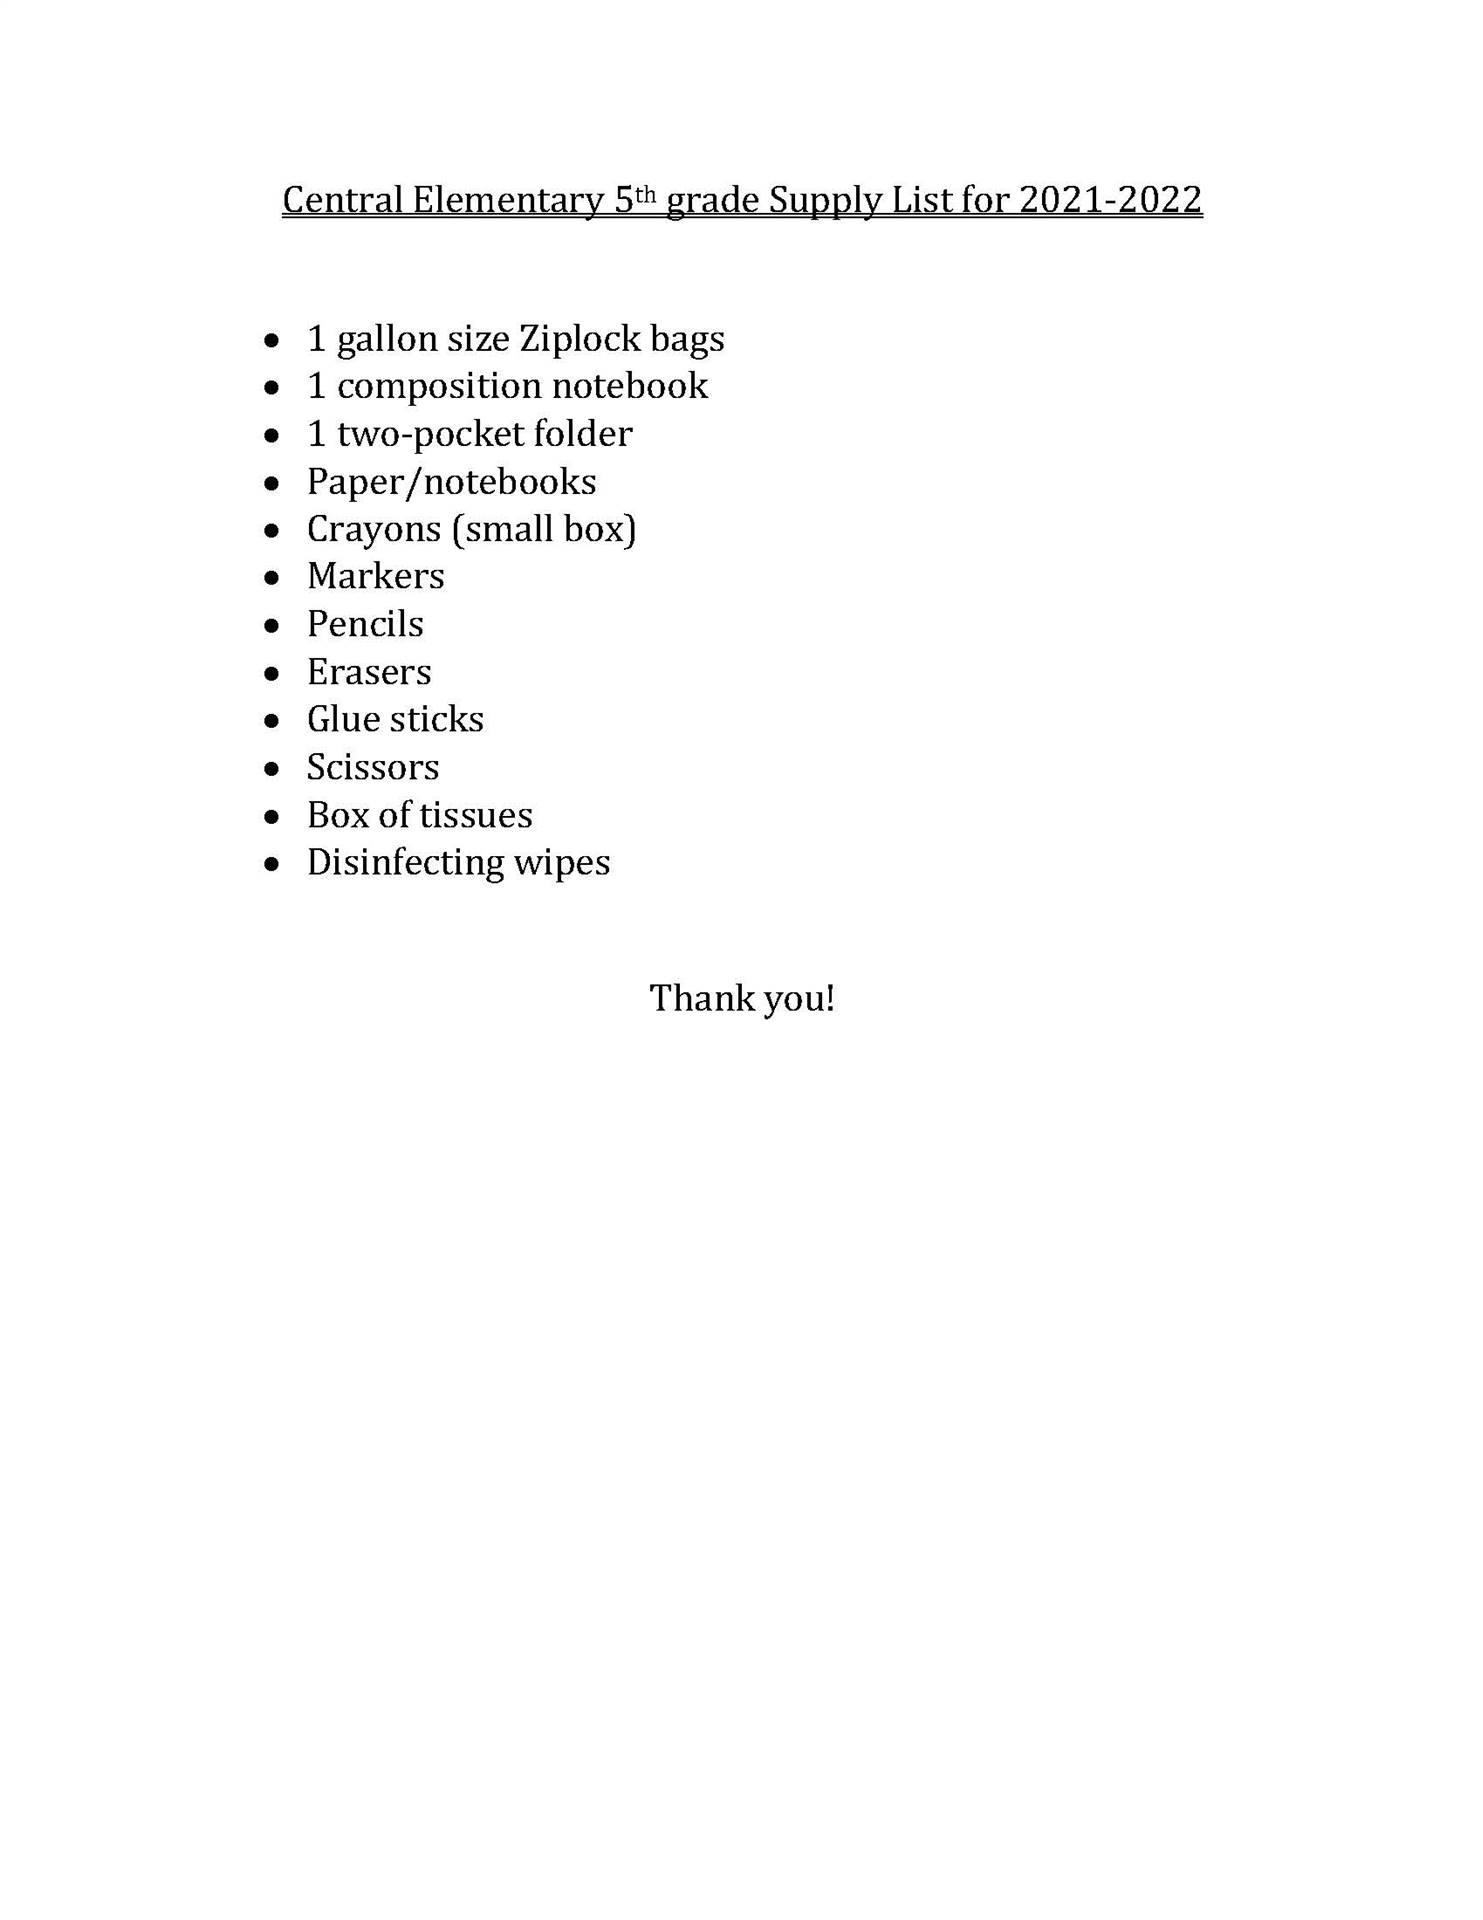 Central 5th Grade Suggested School Supply List